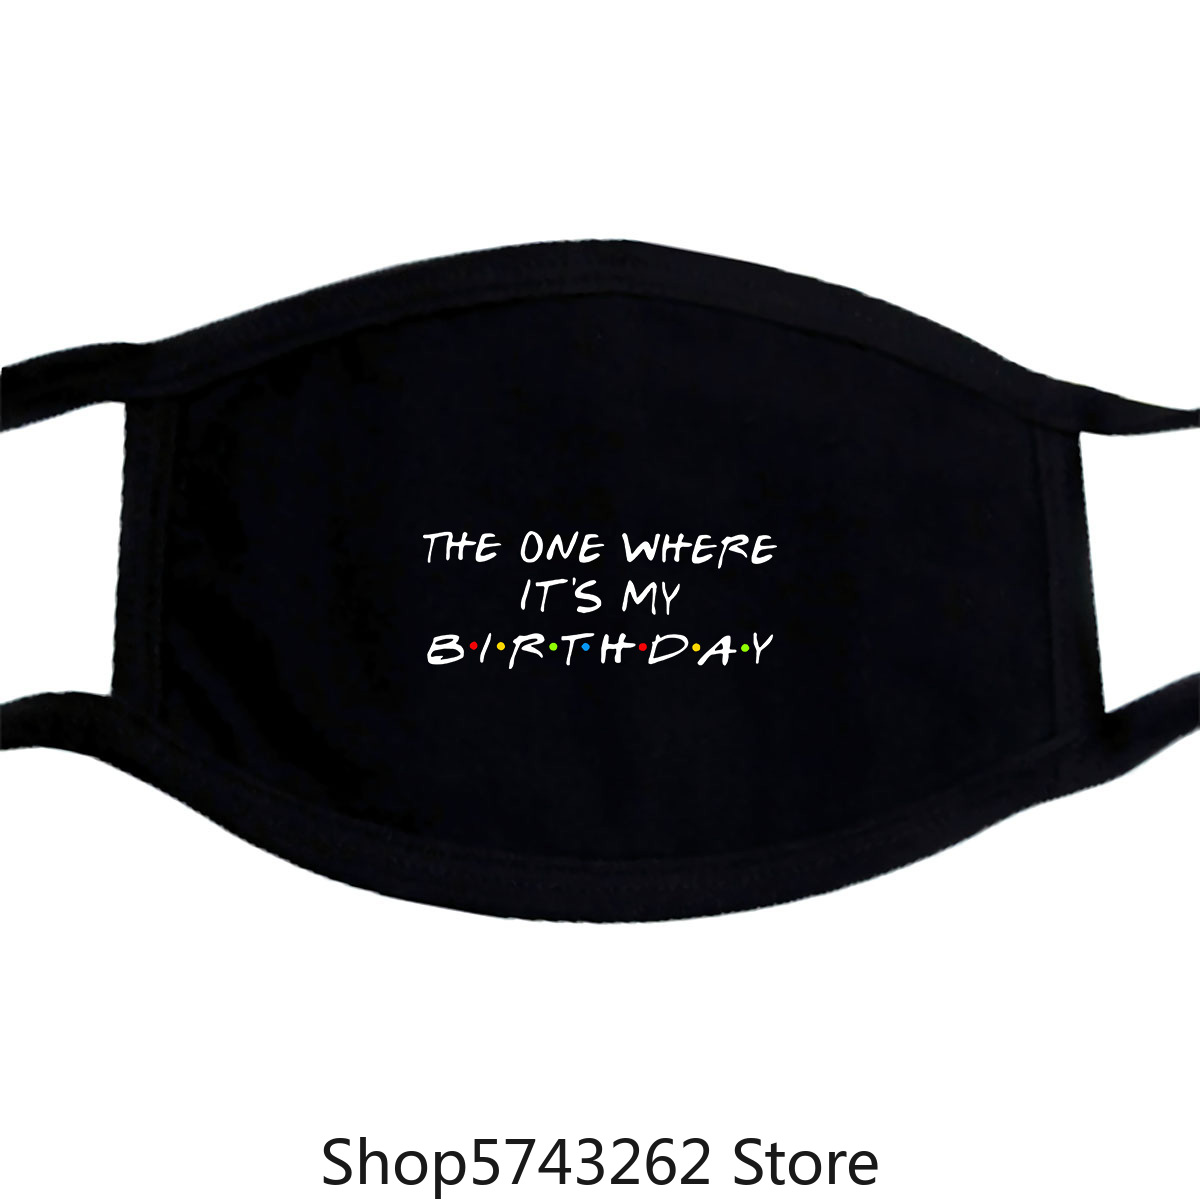 The One Where Its My Birthday Mask Friends Tv Show Greetings Card Mask Washable Reusable Mask With